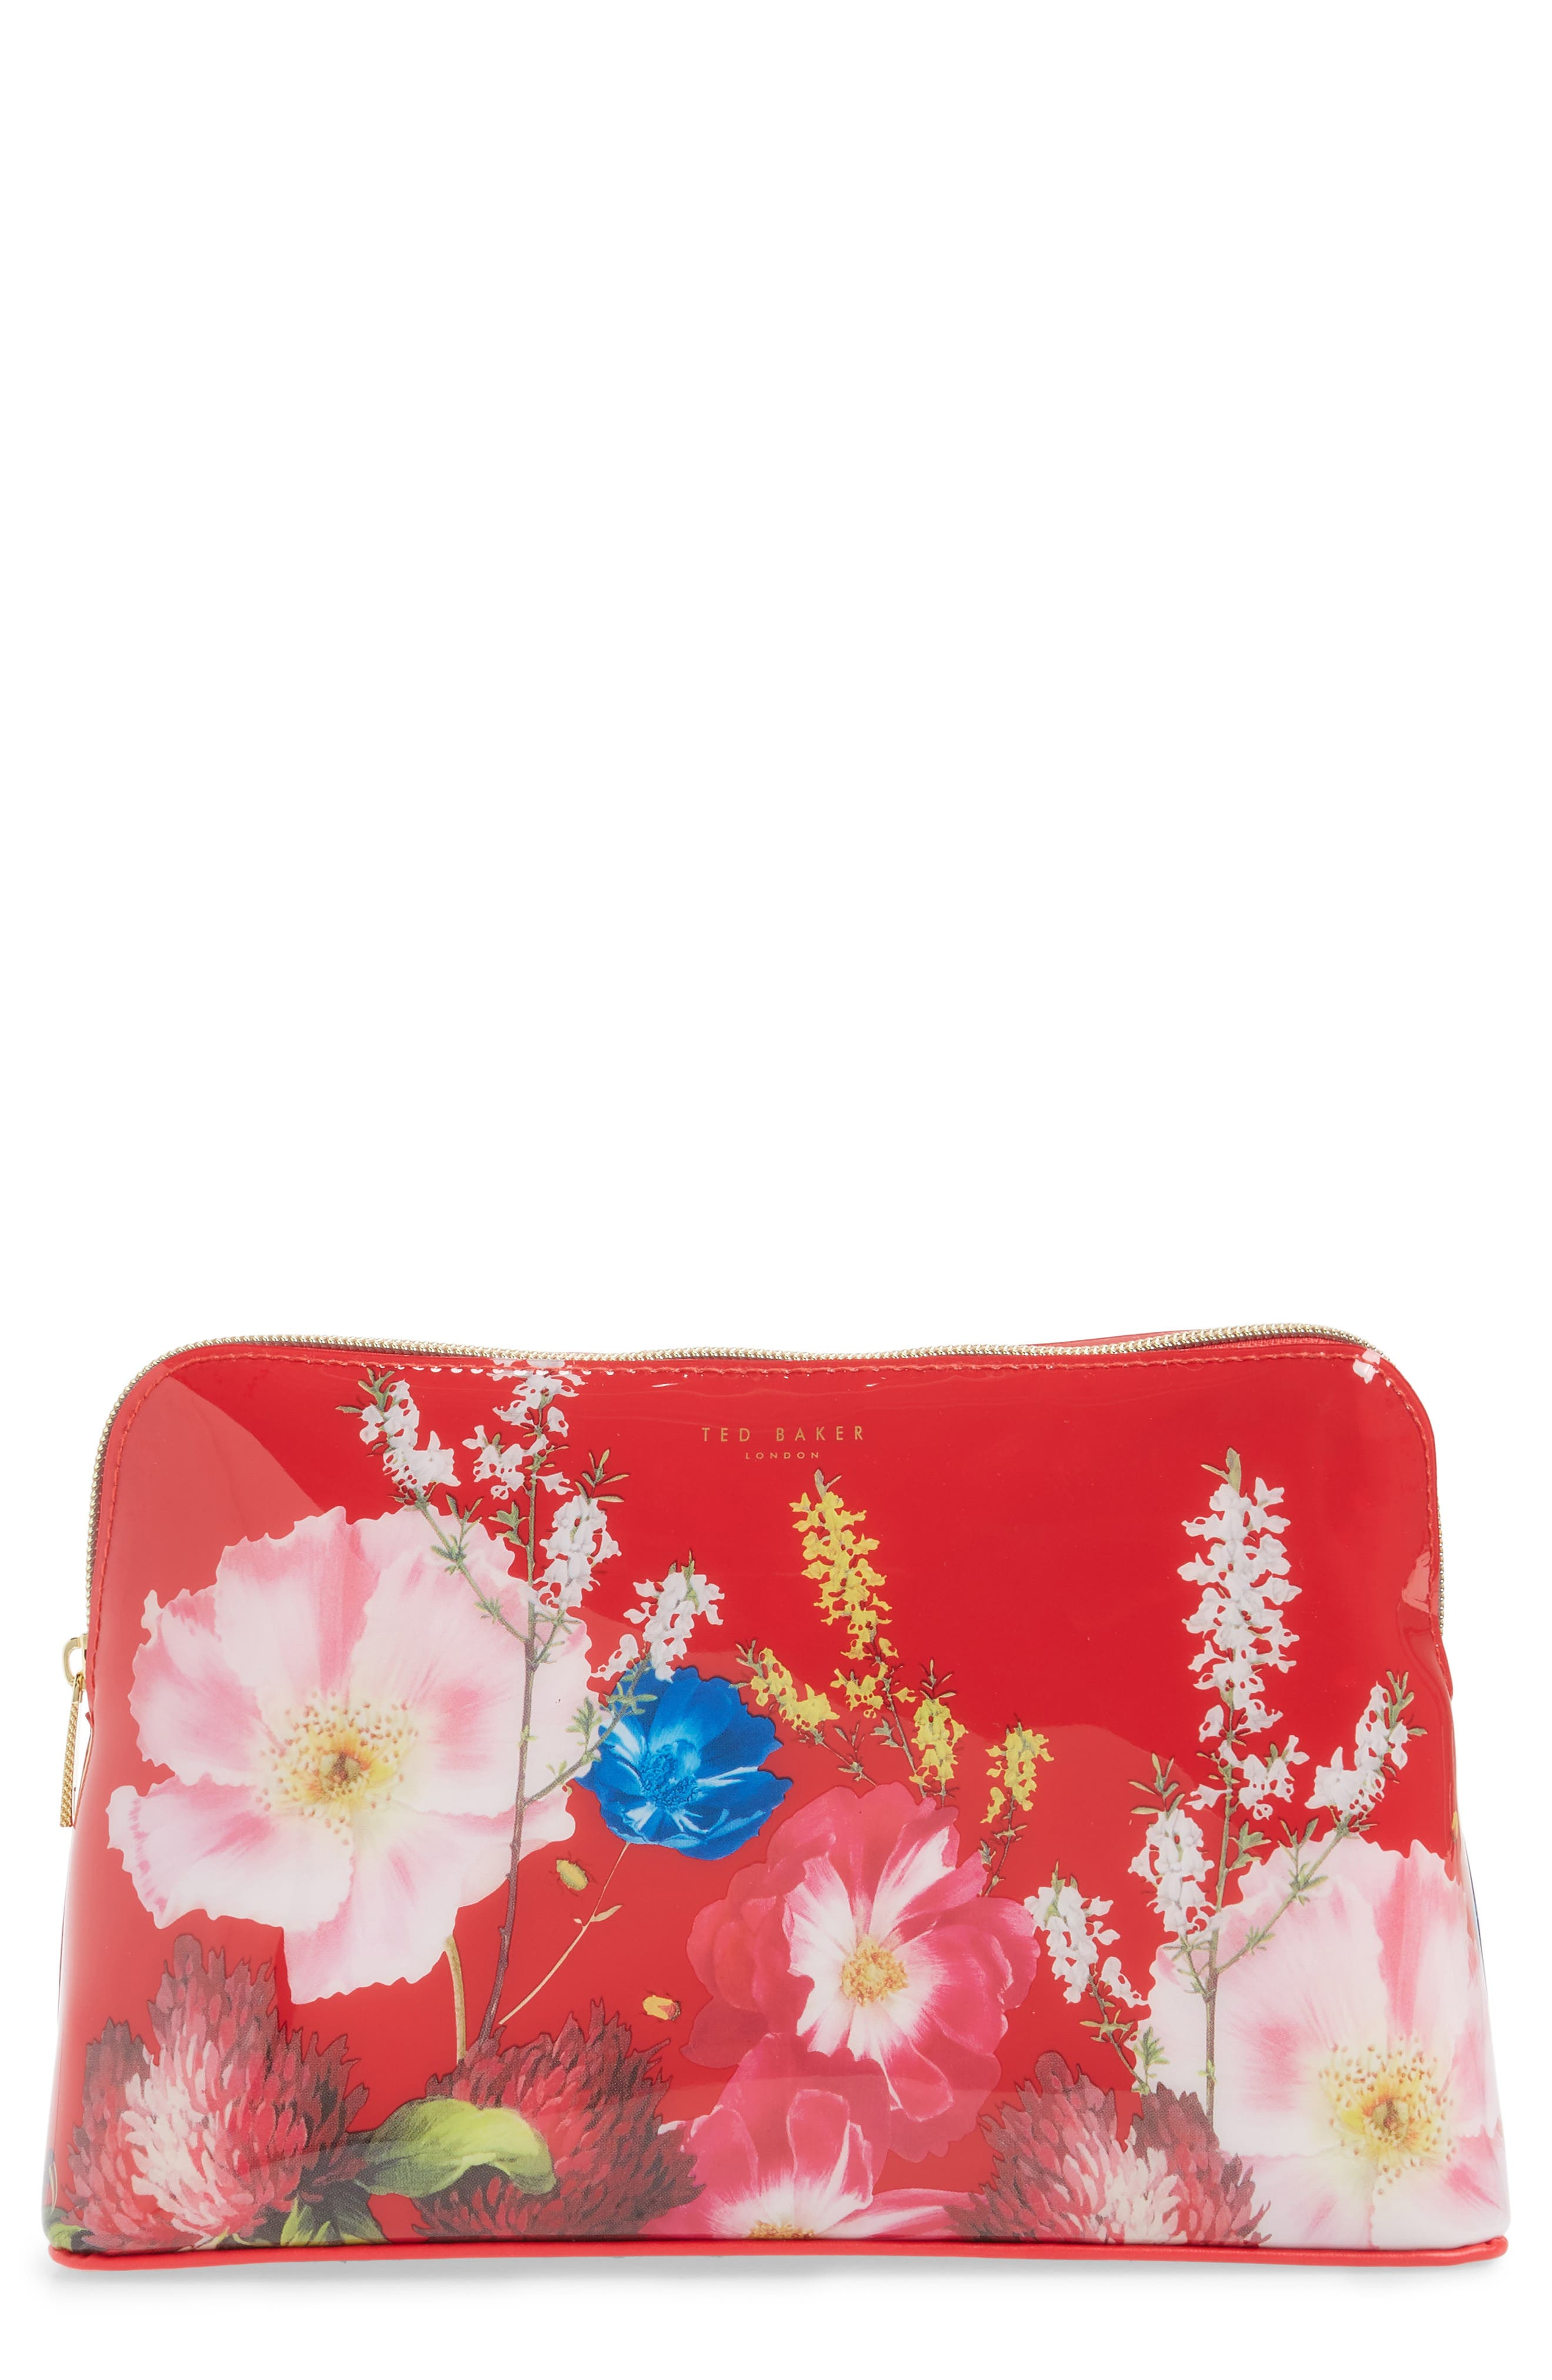 06ec9ce45 Ted Baker London Women s Cosmetics Bags   Cases Accessories